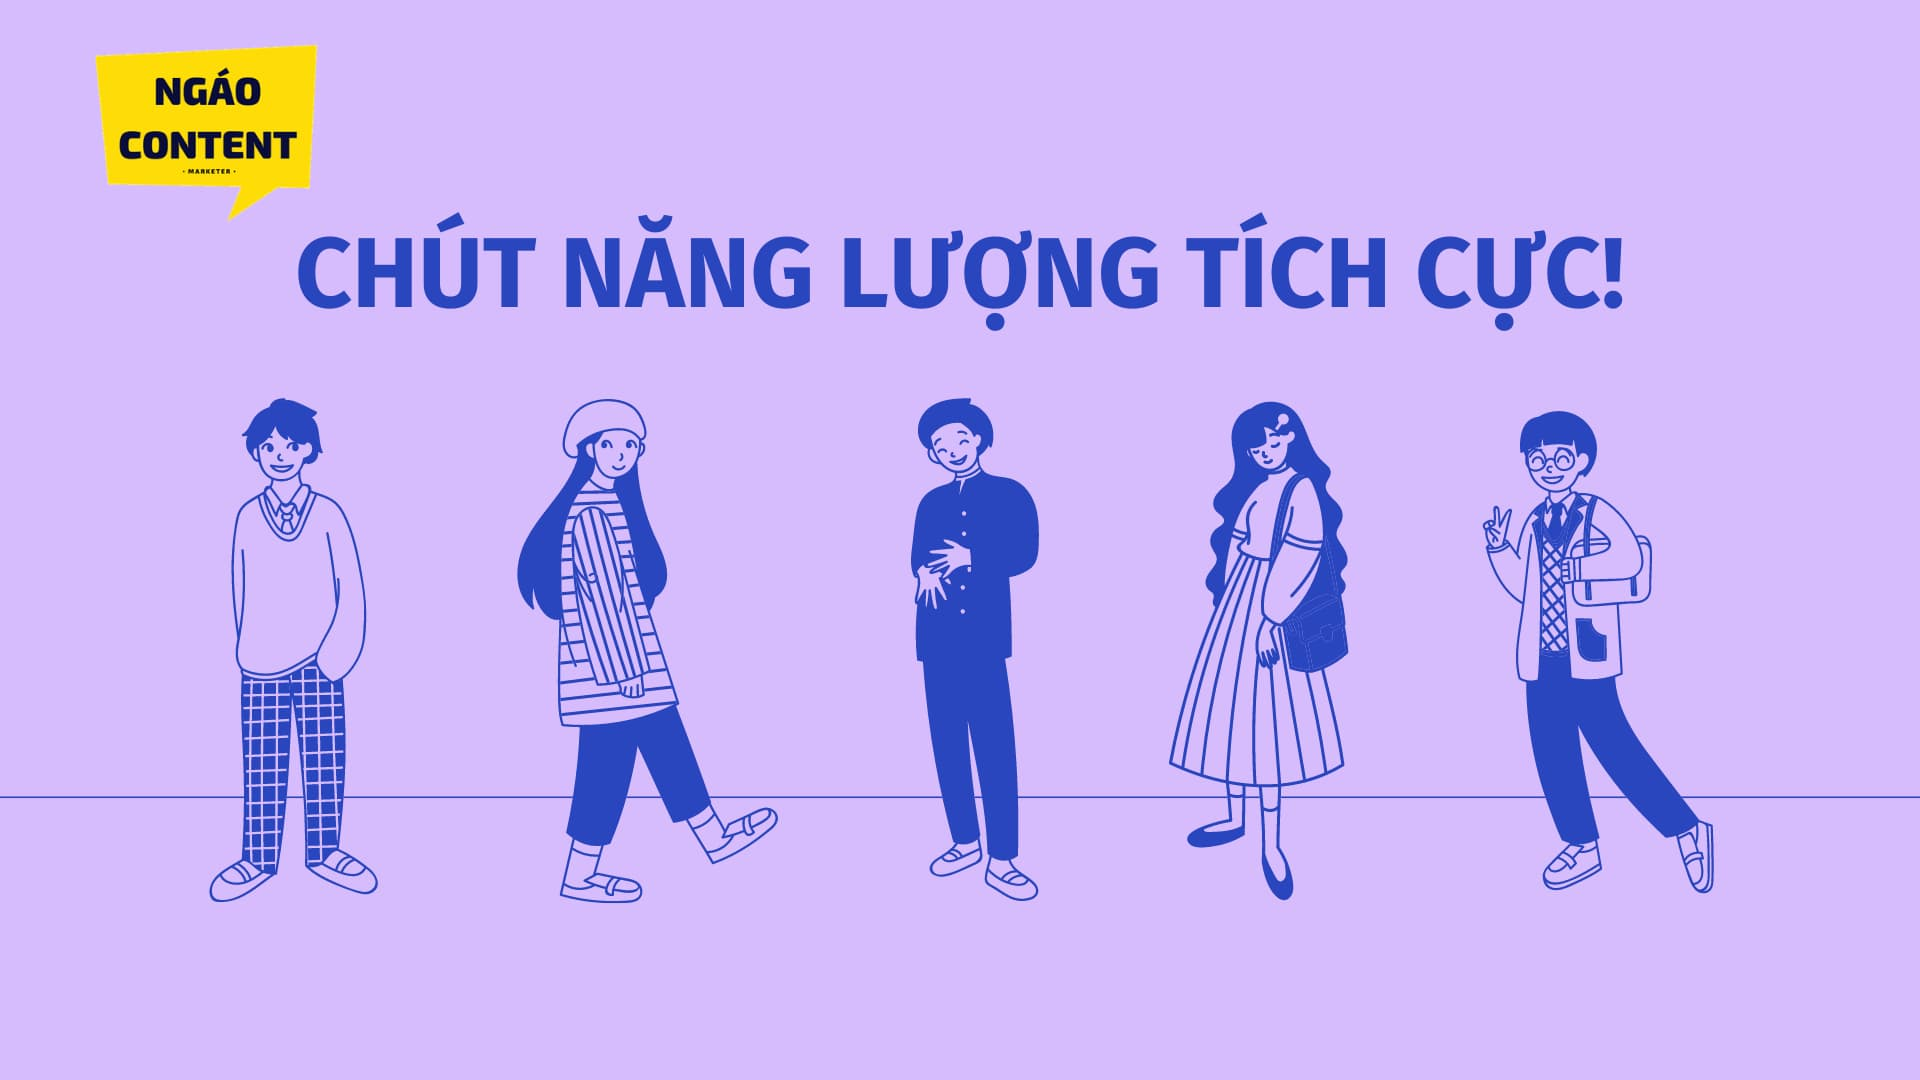 cach-giup-duy-tri-dong-luc